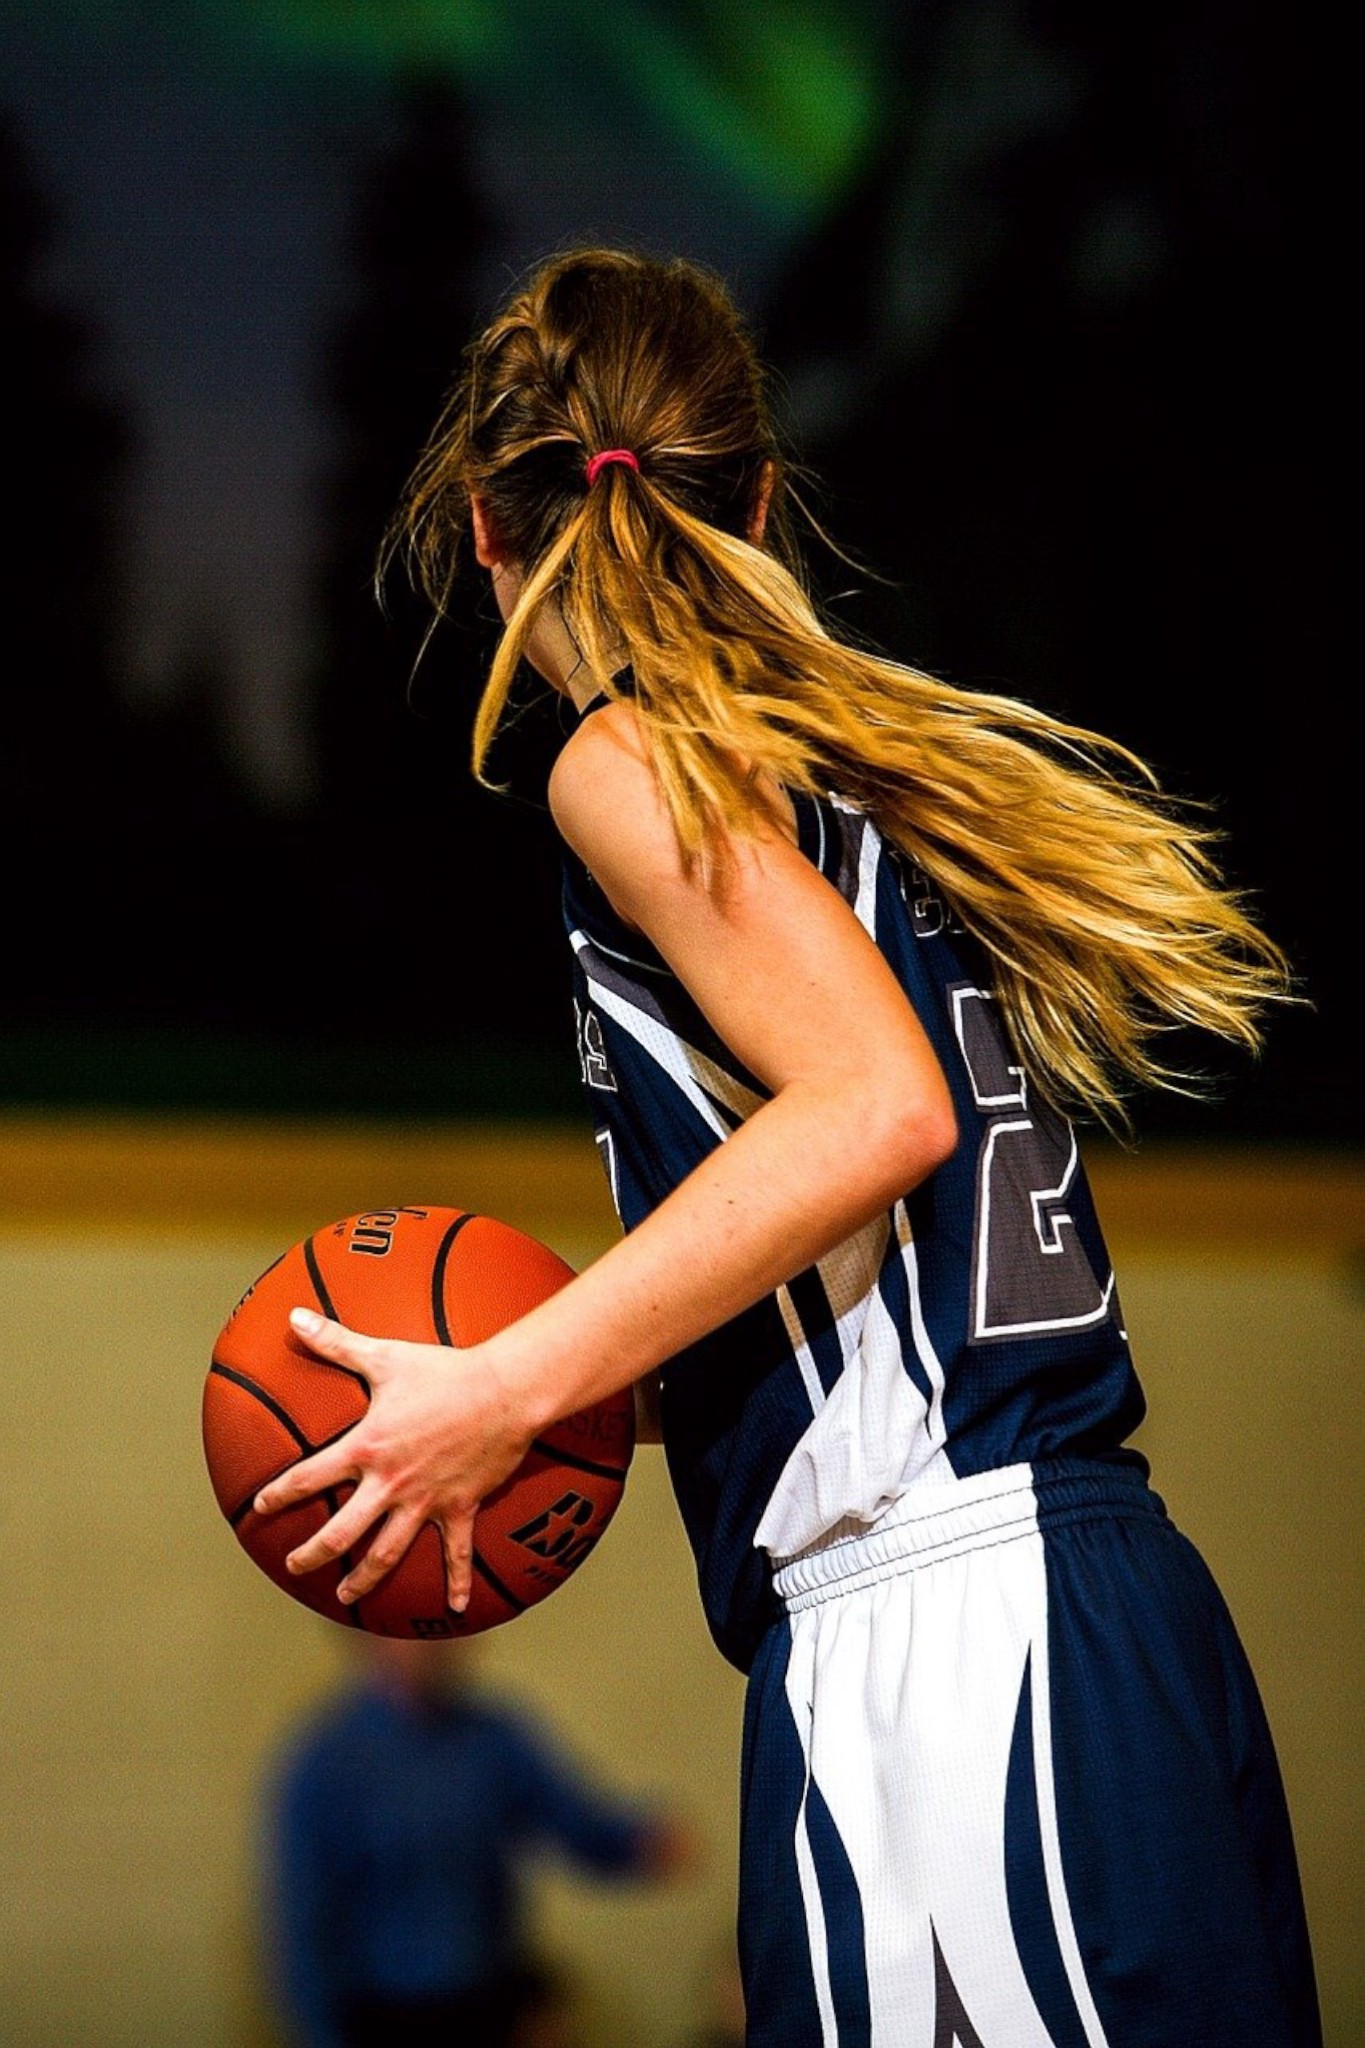 Color photo of a young  blond woman with her hair tied back in a ponytail, wesringa black and white team uniform, holding a basketball, contemplating her next move.